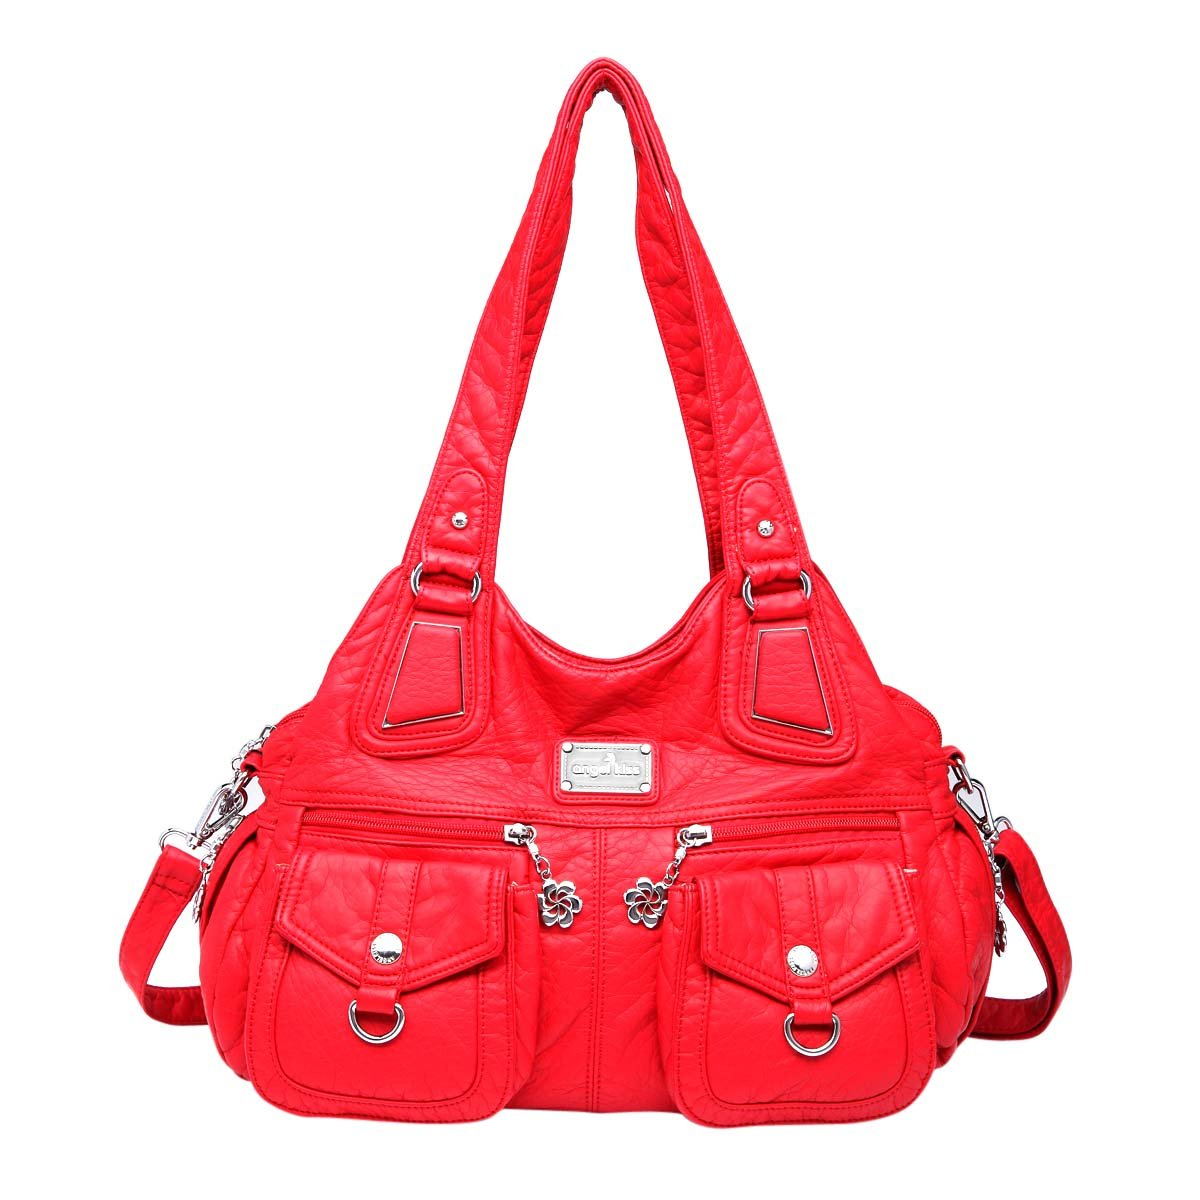 Angelkiss 3 Top Zippers Multi Pockets Handbags Washed Leather Purses Shoulder Bags Backpack 1593/2 (red)